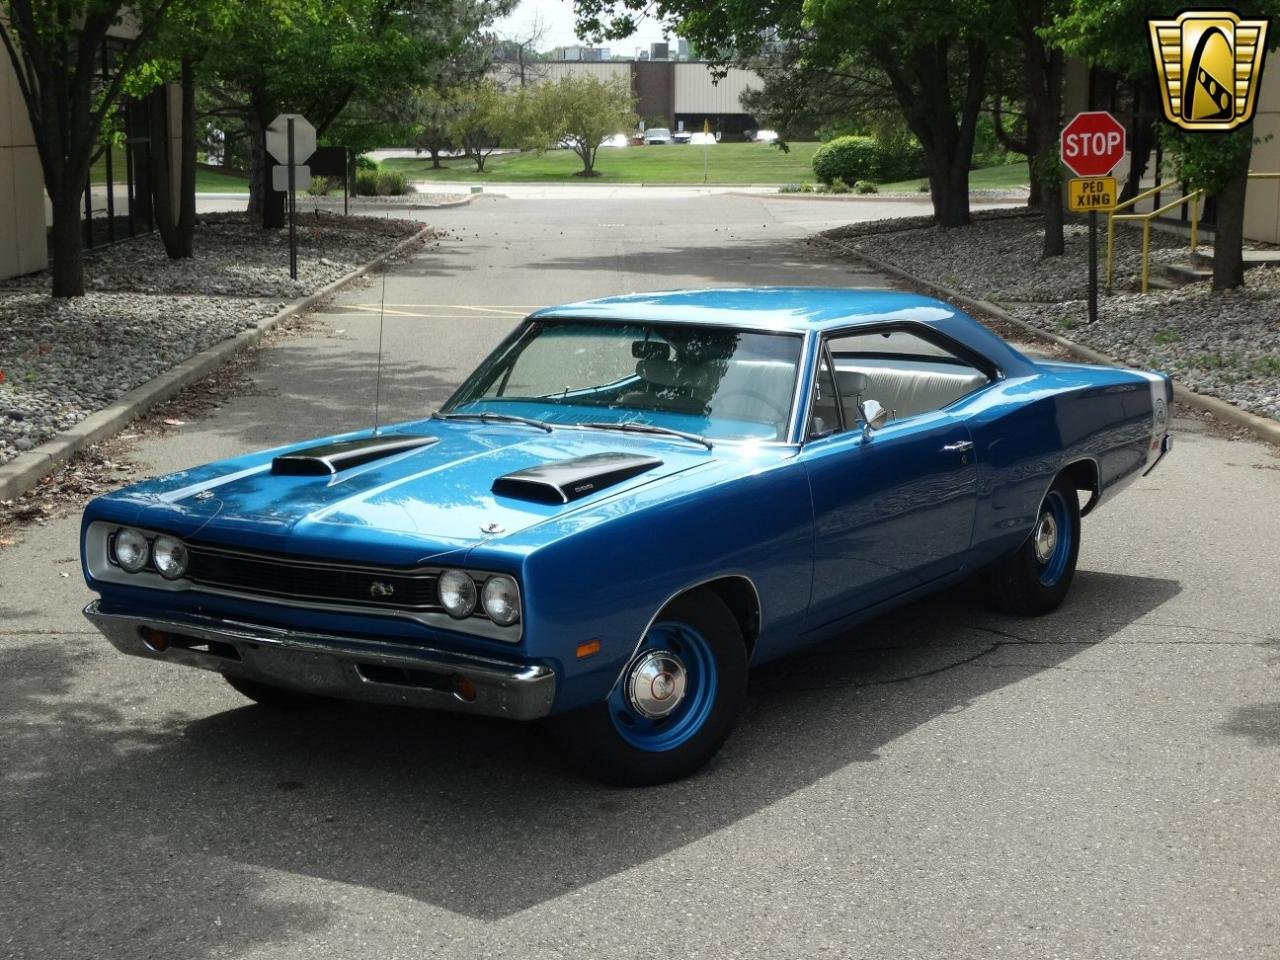 1969 dodge super bee 42300 miles b7 blue coupe 383 cid 4. Black Bedroom Furniture Sets. Home Design Ideas